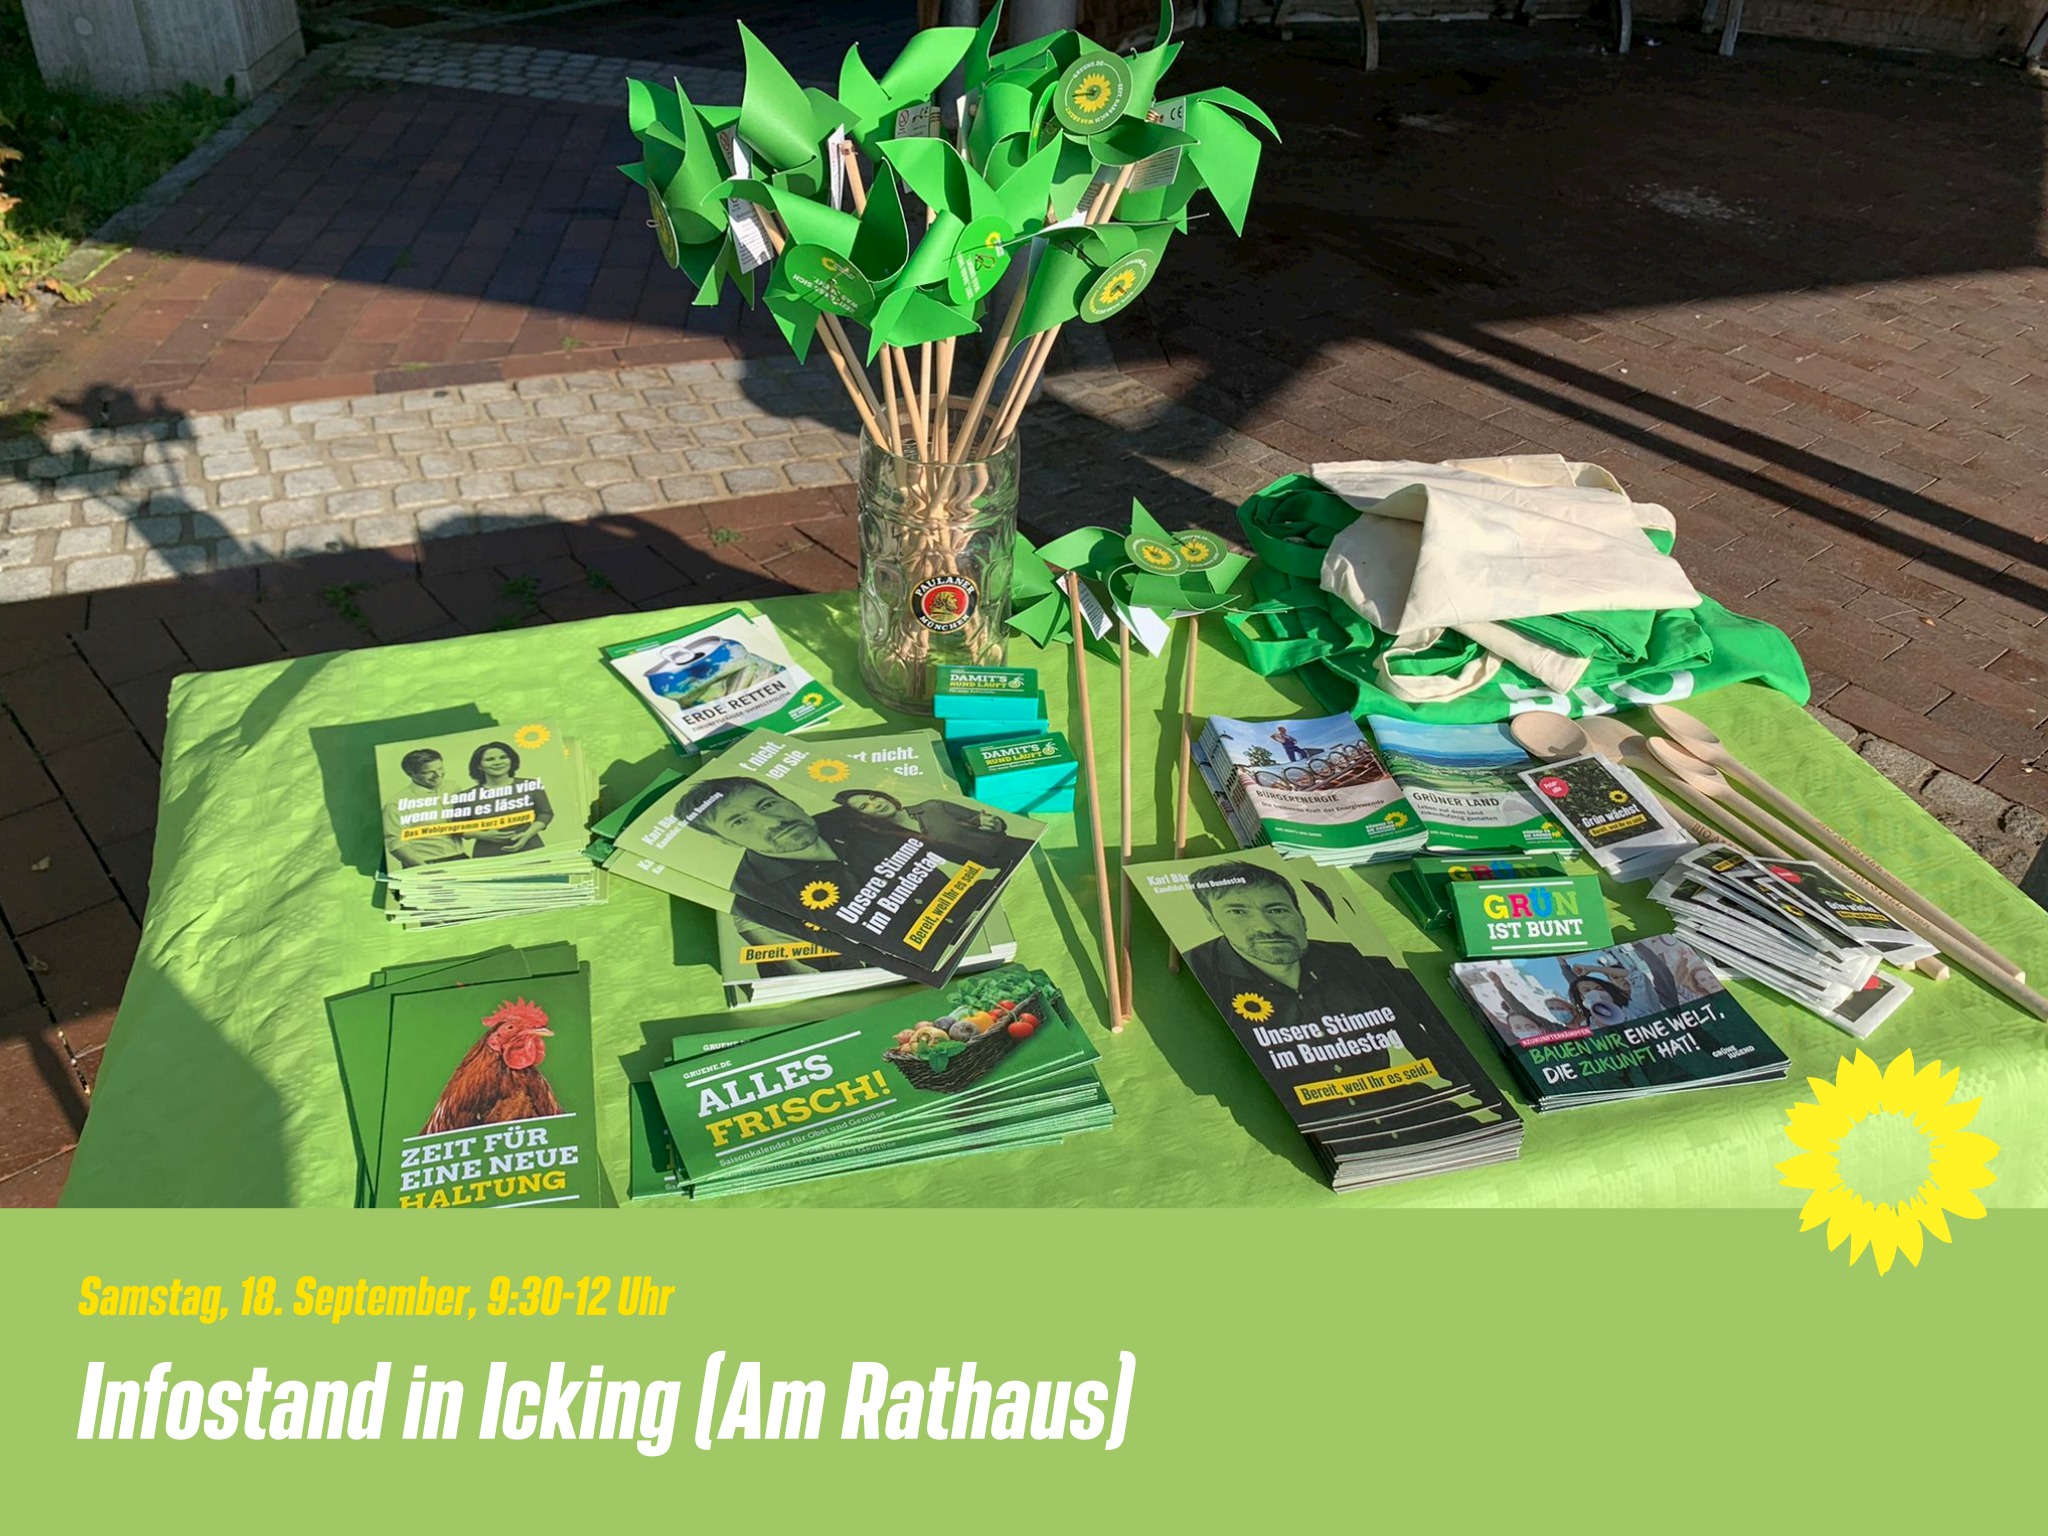 Infostand in Icking